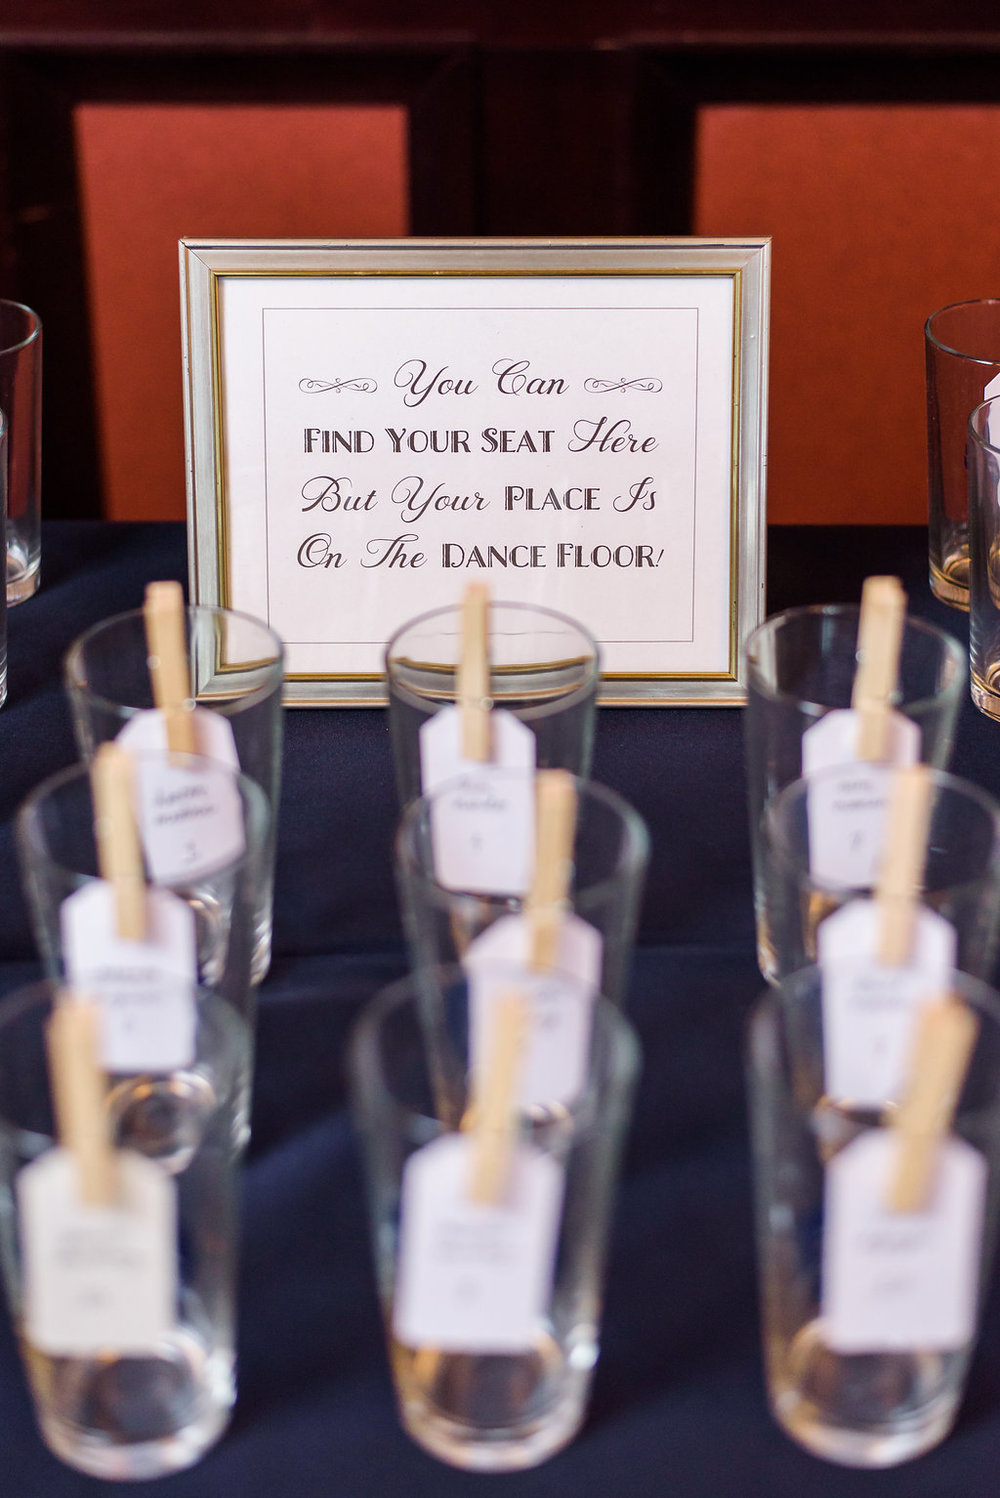 Guests sipped from their custom pint glass favors which doubled as escort cards.